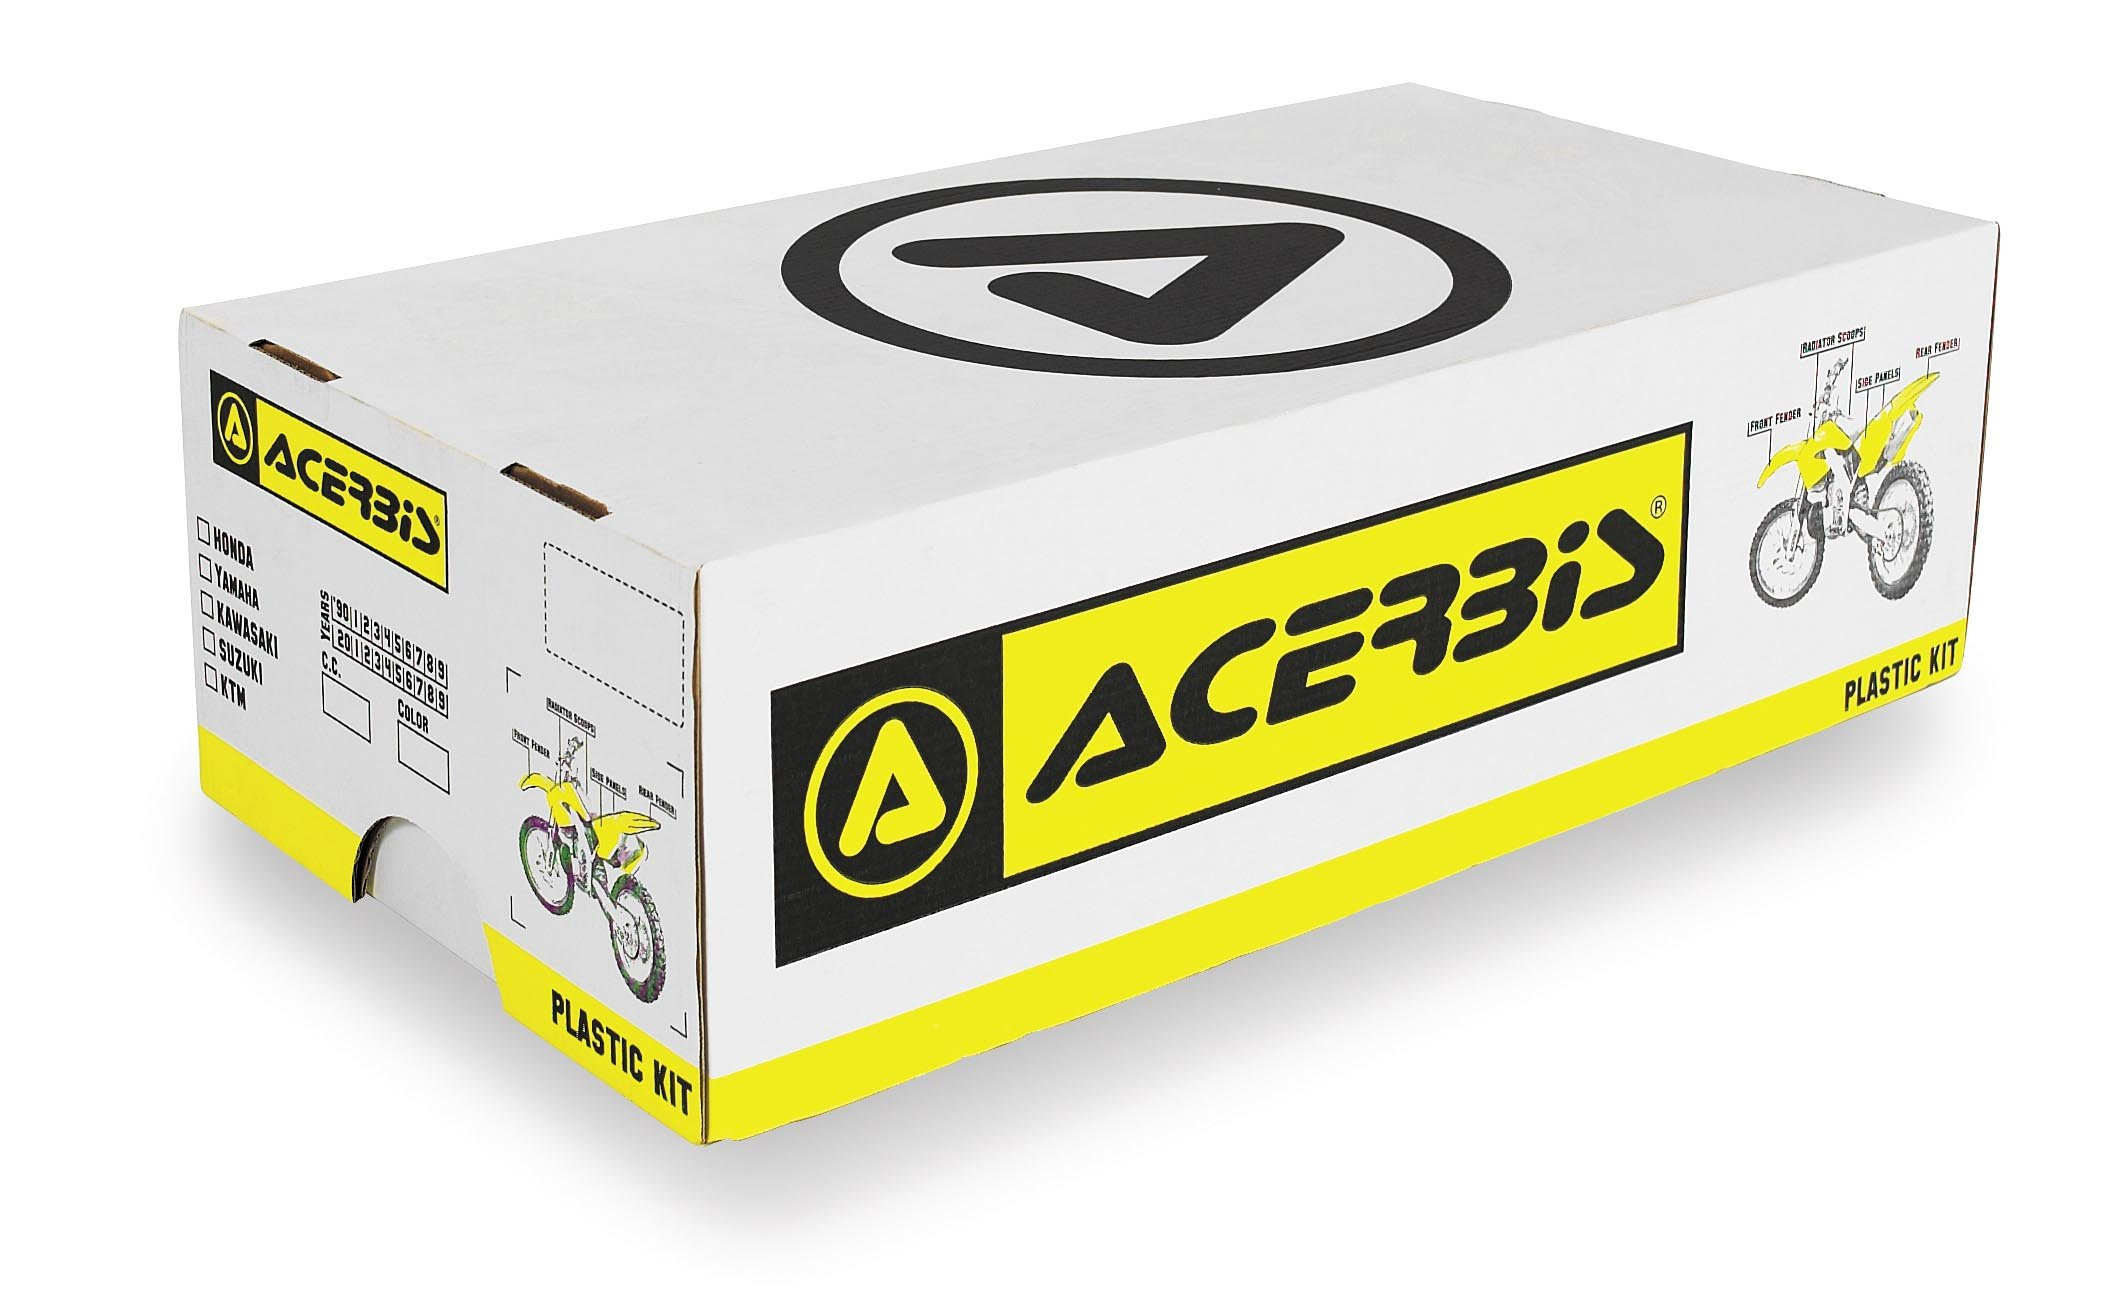 Acerbis 2198050001 Plastic Kit, (Pack of 9)